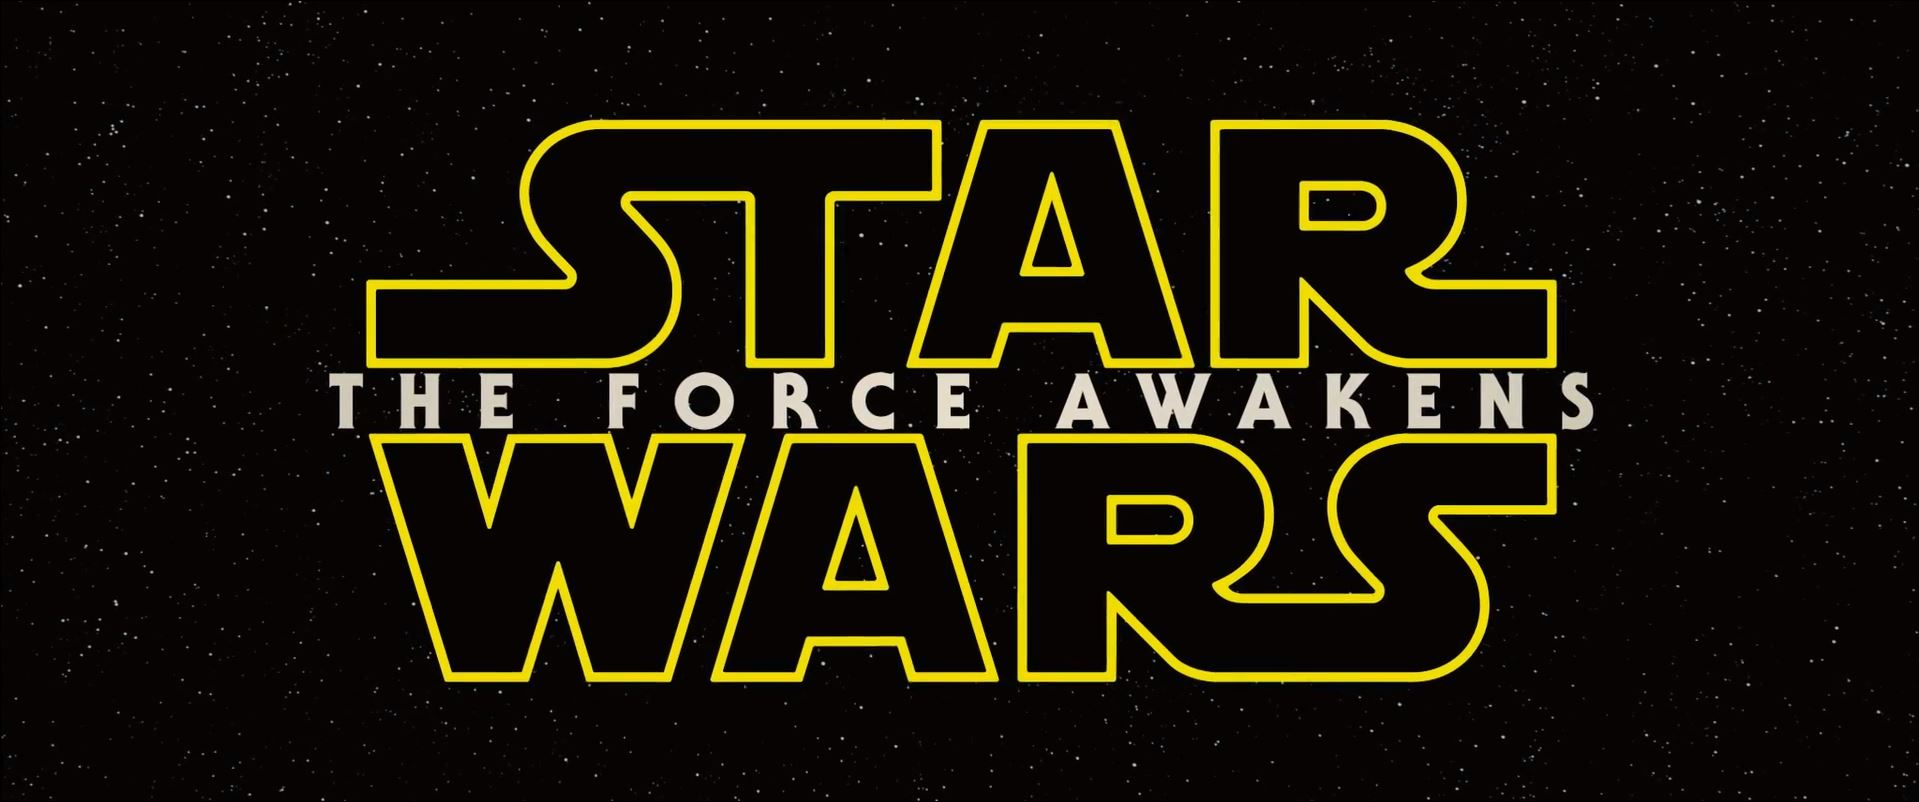 The Force Awakens title poster. New Star Wars The Force Awakens Trailer Released!